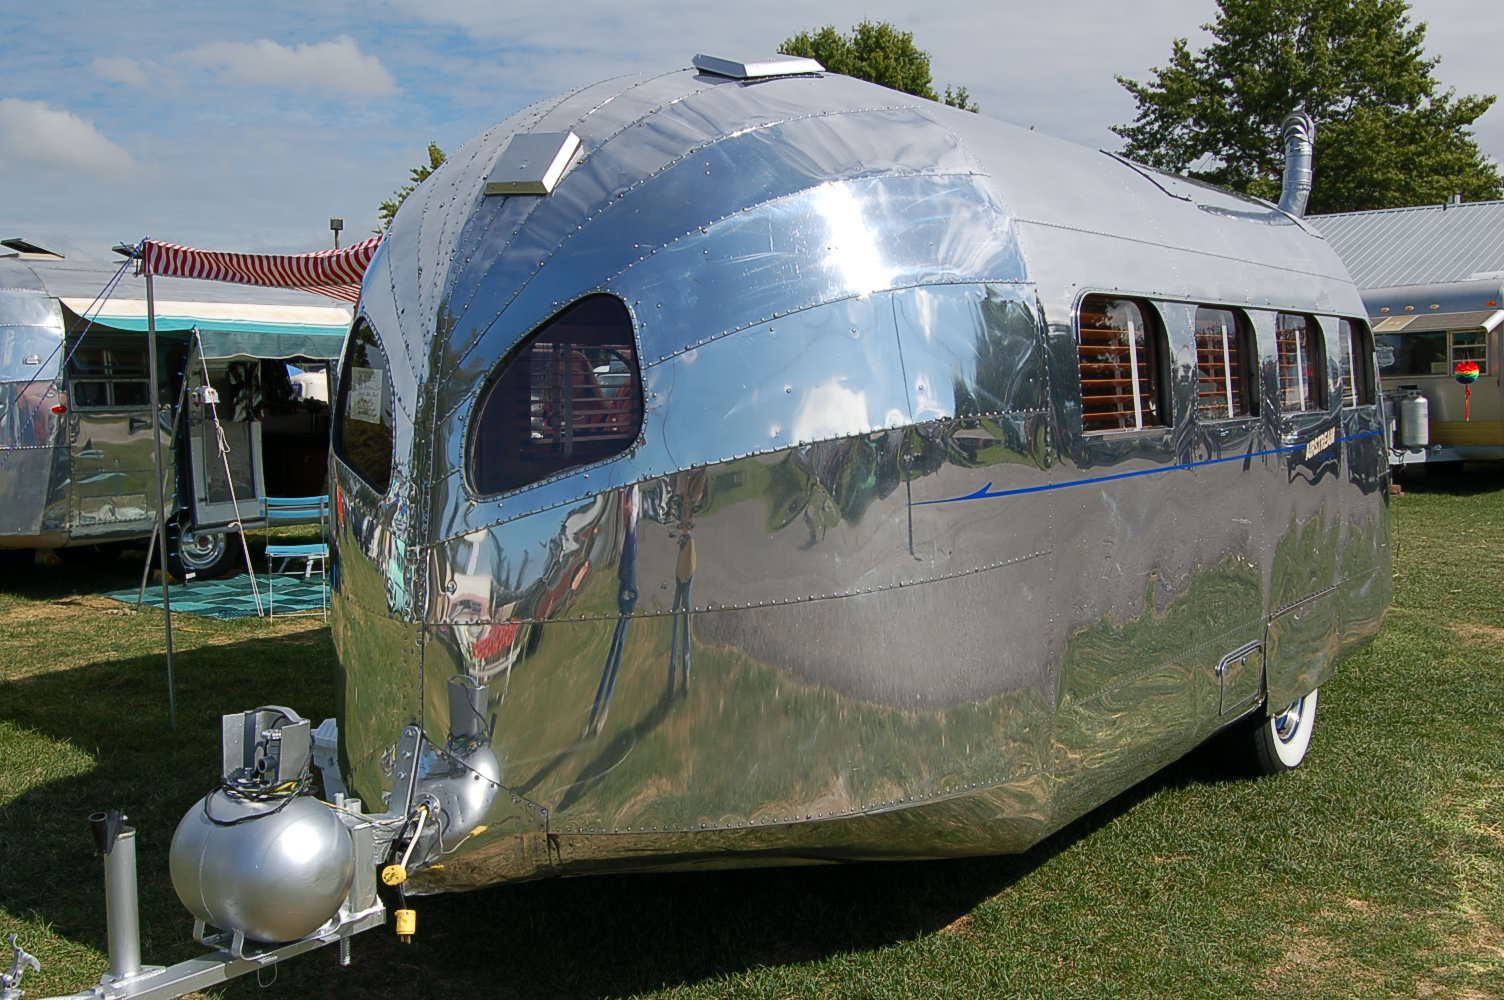 Click image for larger version  Name:1936-airstream-clipper-trailer702.jpg Views:142 Size:681.6 KB ID:140283